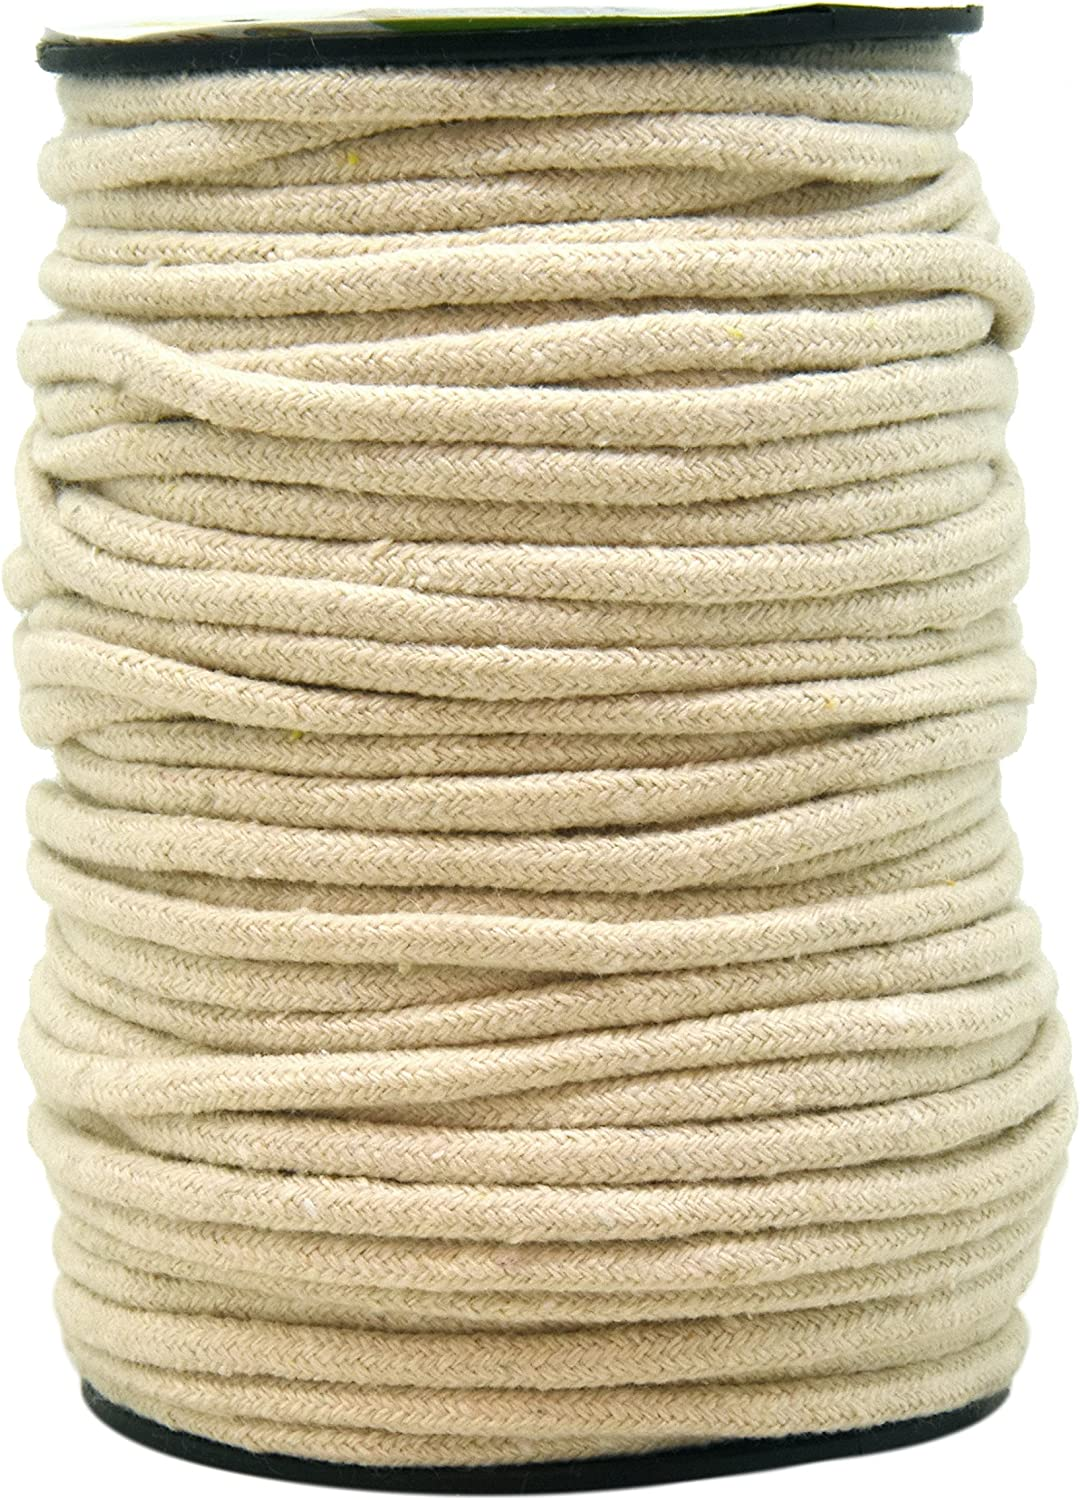 Mandala Crafts Soft Drawstring Replacement Rope Upholstery Crochet Macramé Cotton Welt Trim Piping Cord (Natural, 3mm)